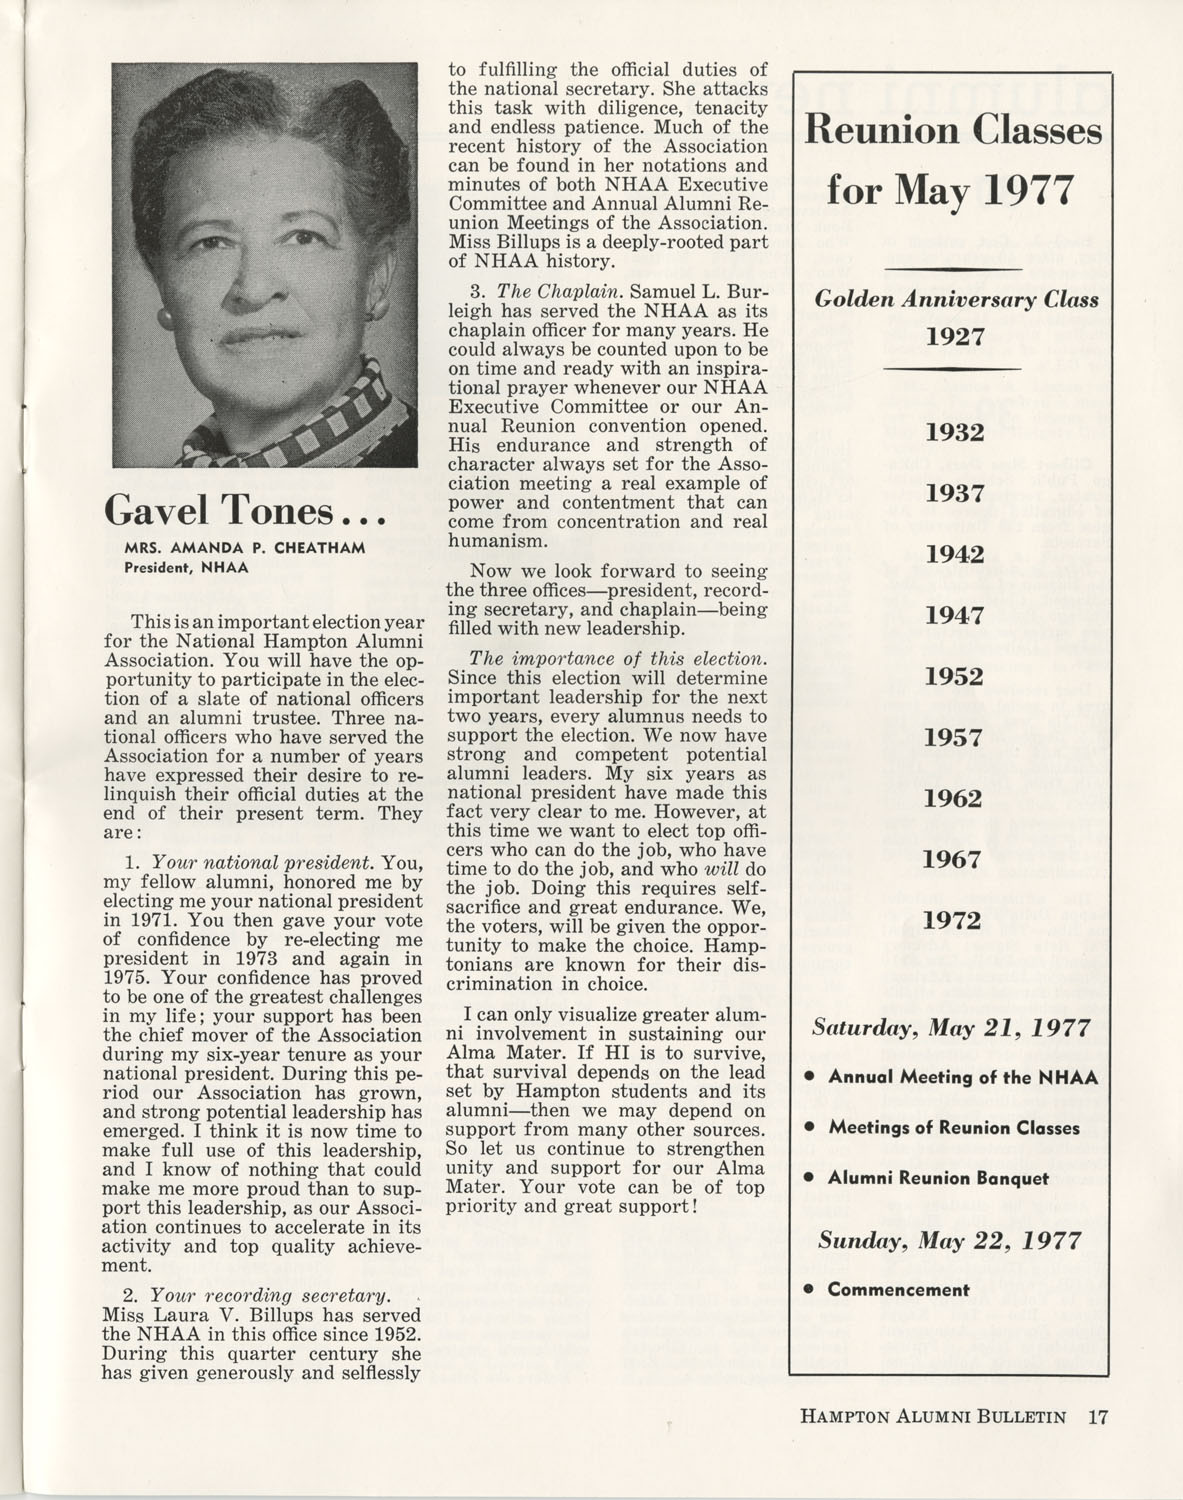 The Hampton Bulletin, Winter 1977, Page 17